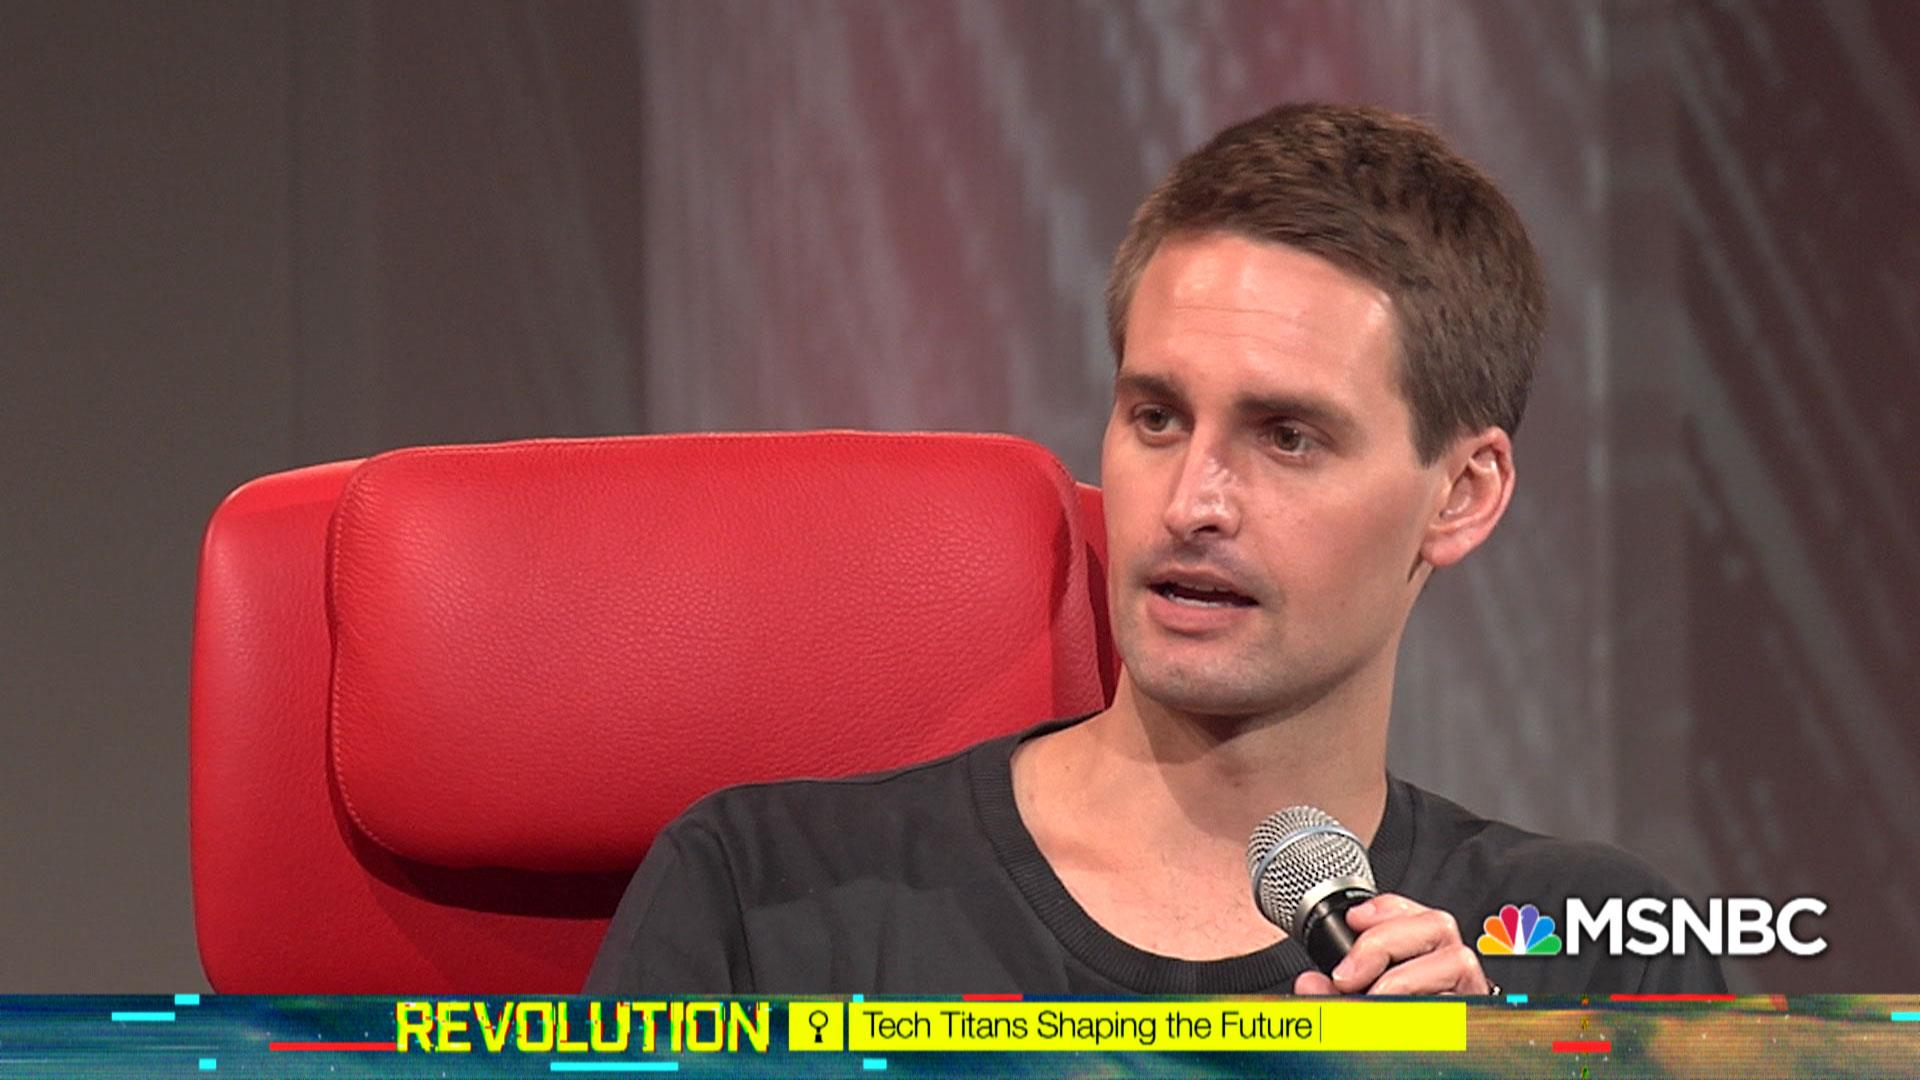 Snapchat CEO on redesign backlash and fixing 'mistakes'